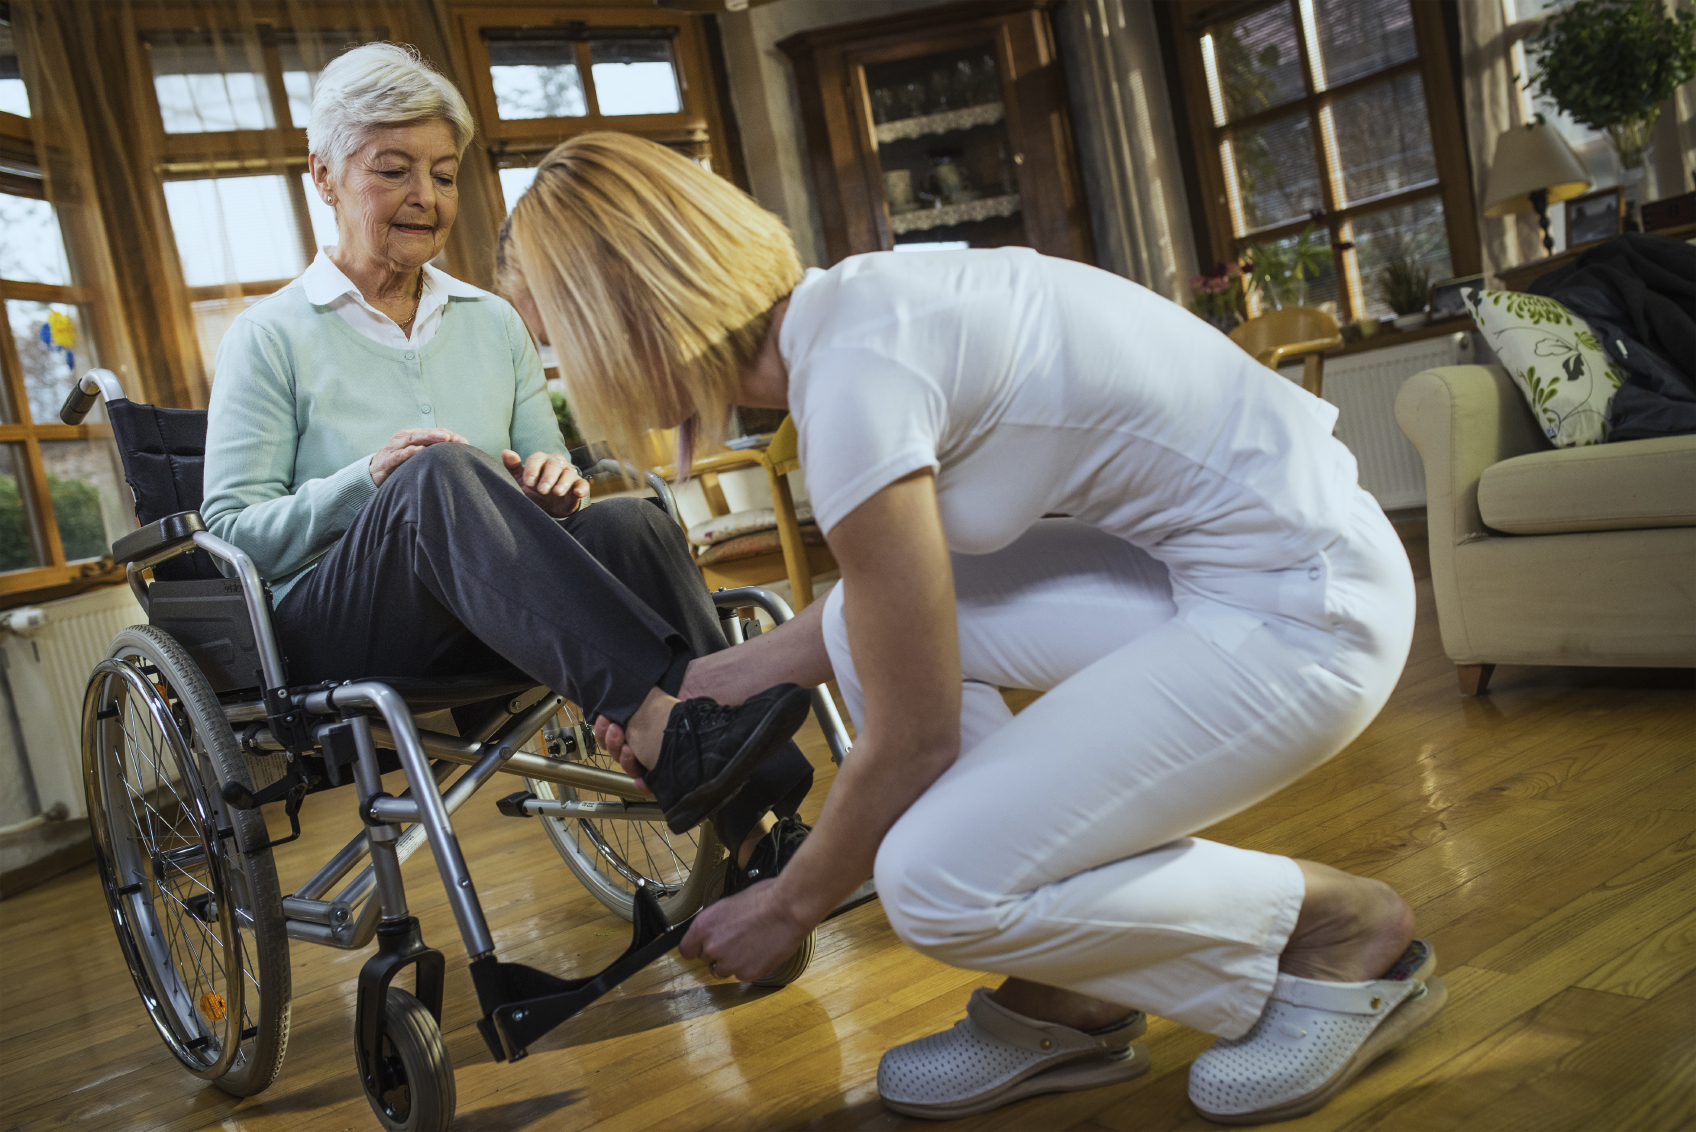 Aged care reforms bring changes to home care but will Australians be better off?